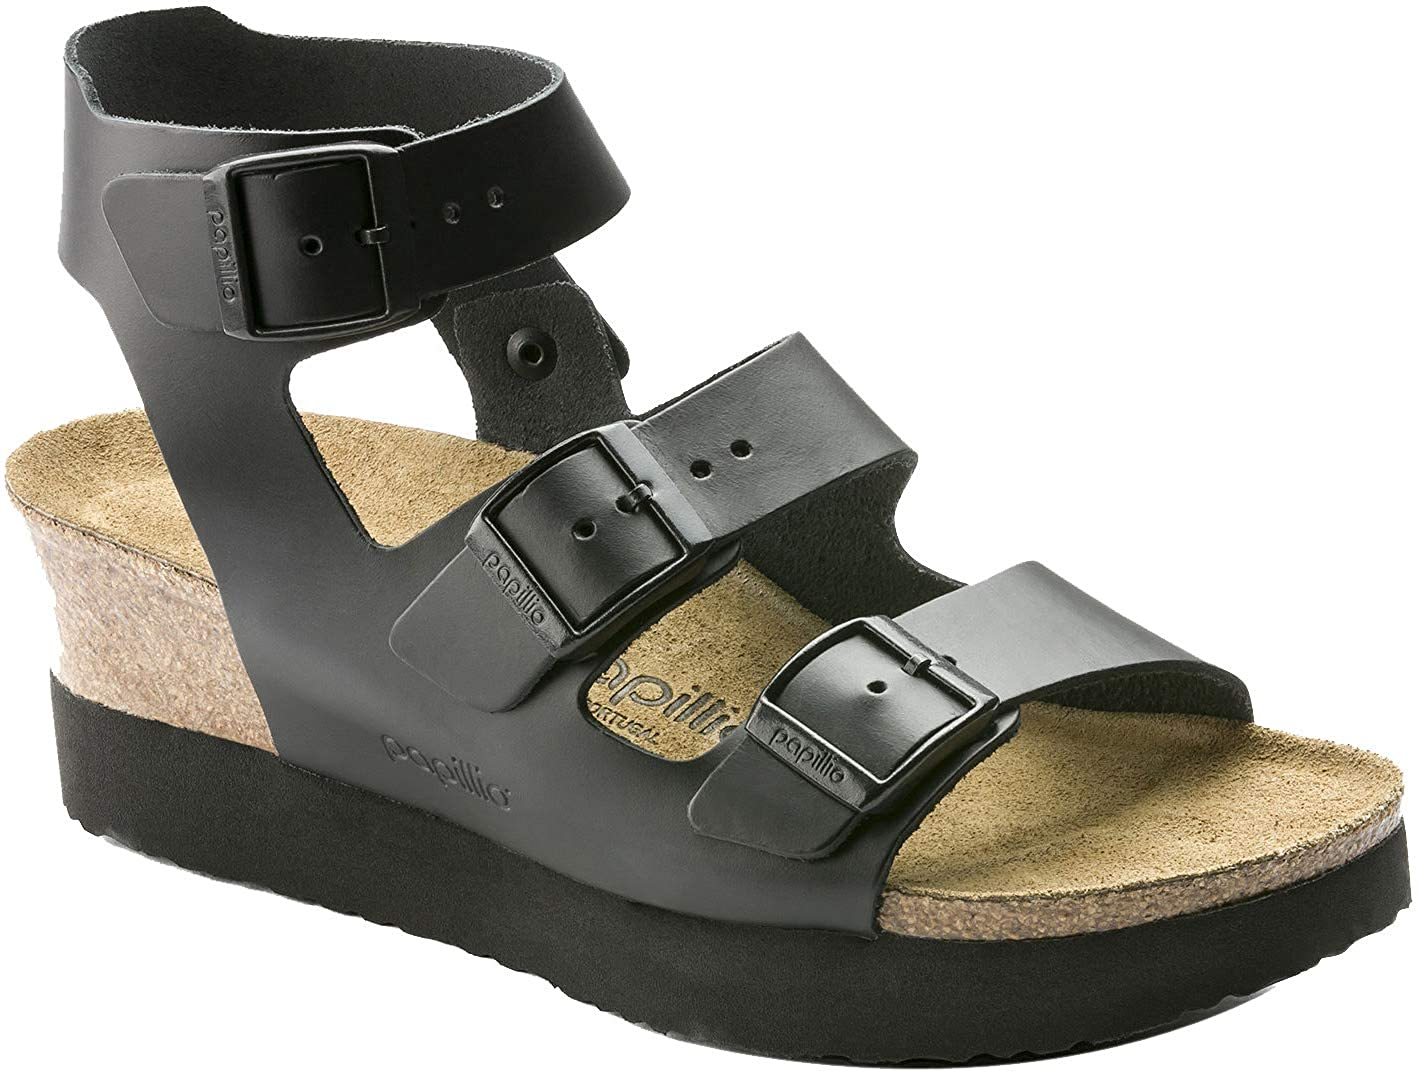 1eb8d78951 Amazon.com | Birkenstock Womens Linnea Sandal, Black, Size 42 N EU (11-11.5  N US Women) | Sandals